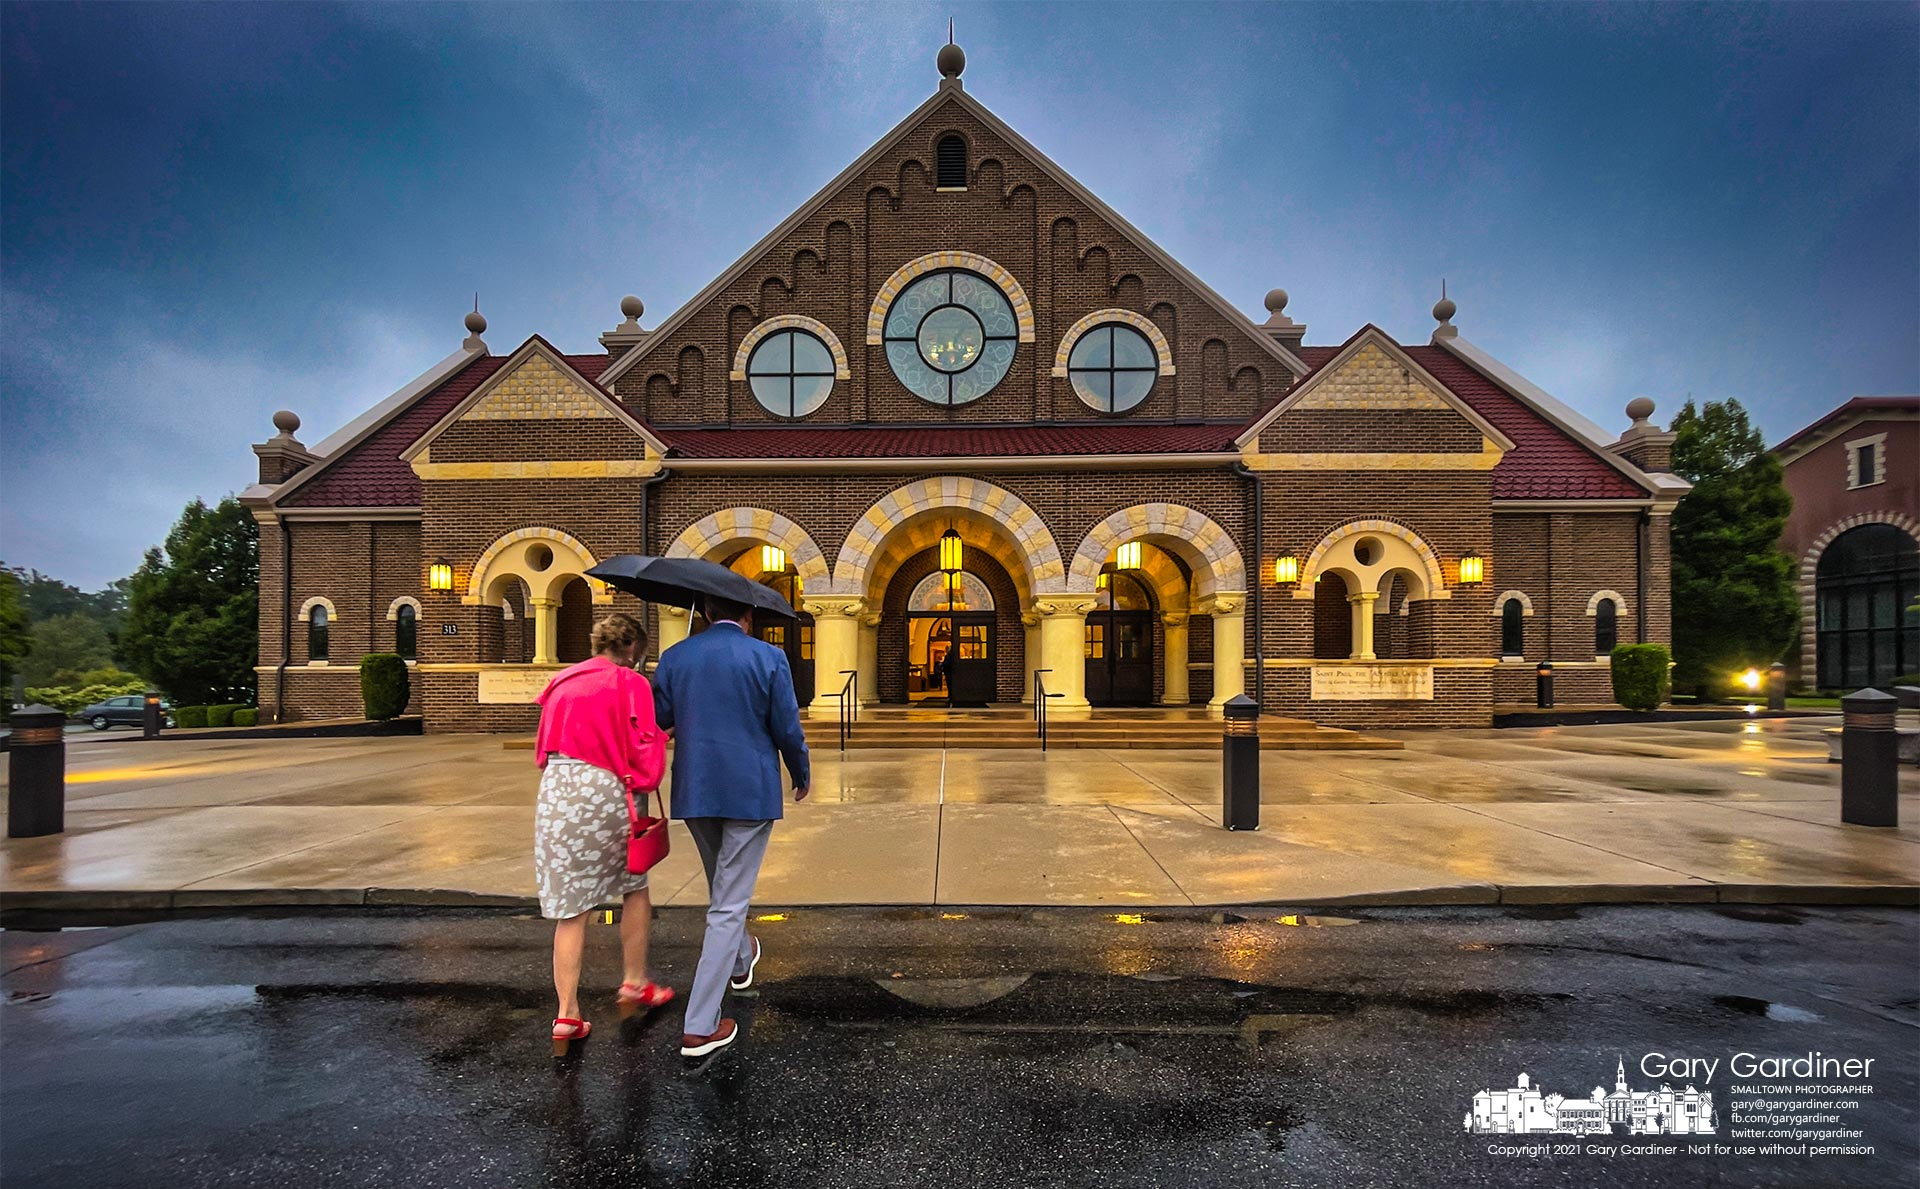 Parishioners arrive in the rain for the first Sunday Mass at St. Paul the Apostle Catholic Church in Westerville. My Final Photo for Sept. 5, 2021.